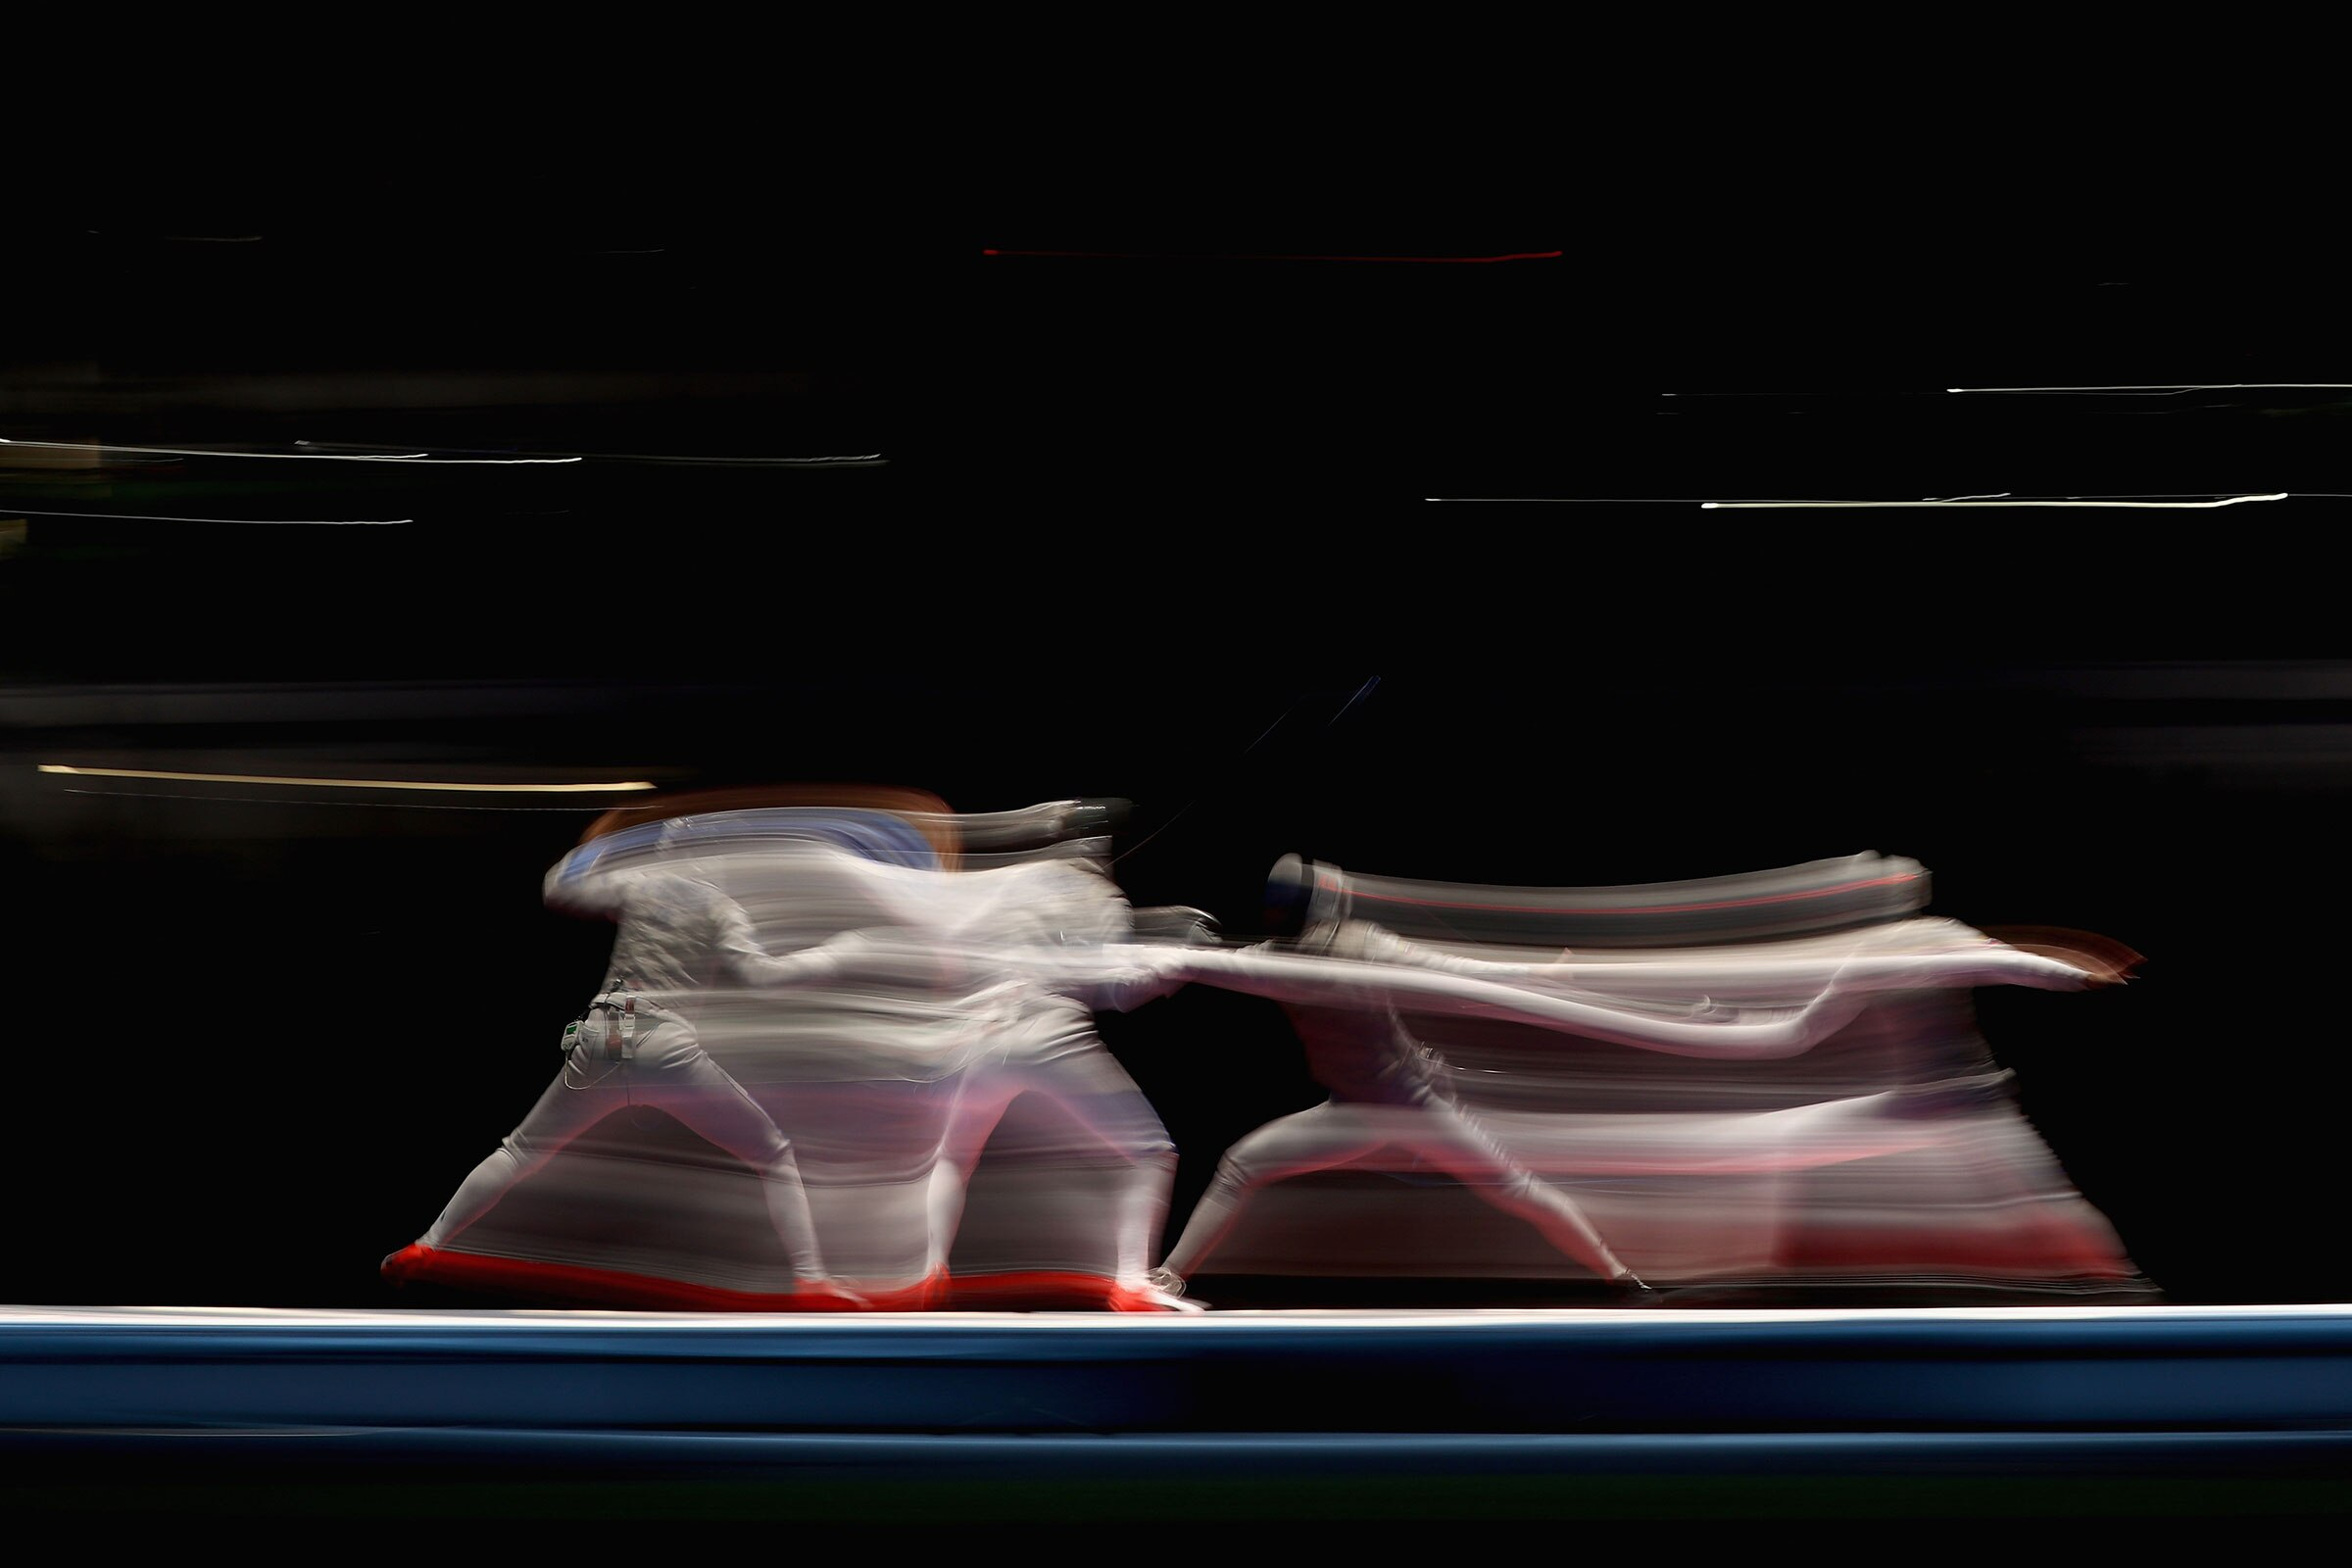 Fencing - Women's Foil Individual - Gold Medal